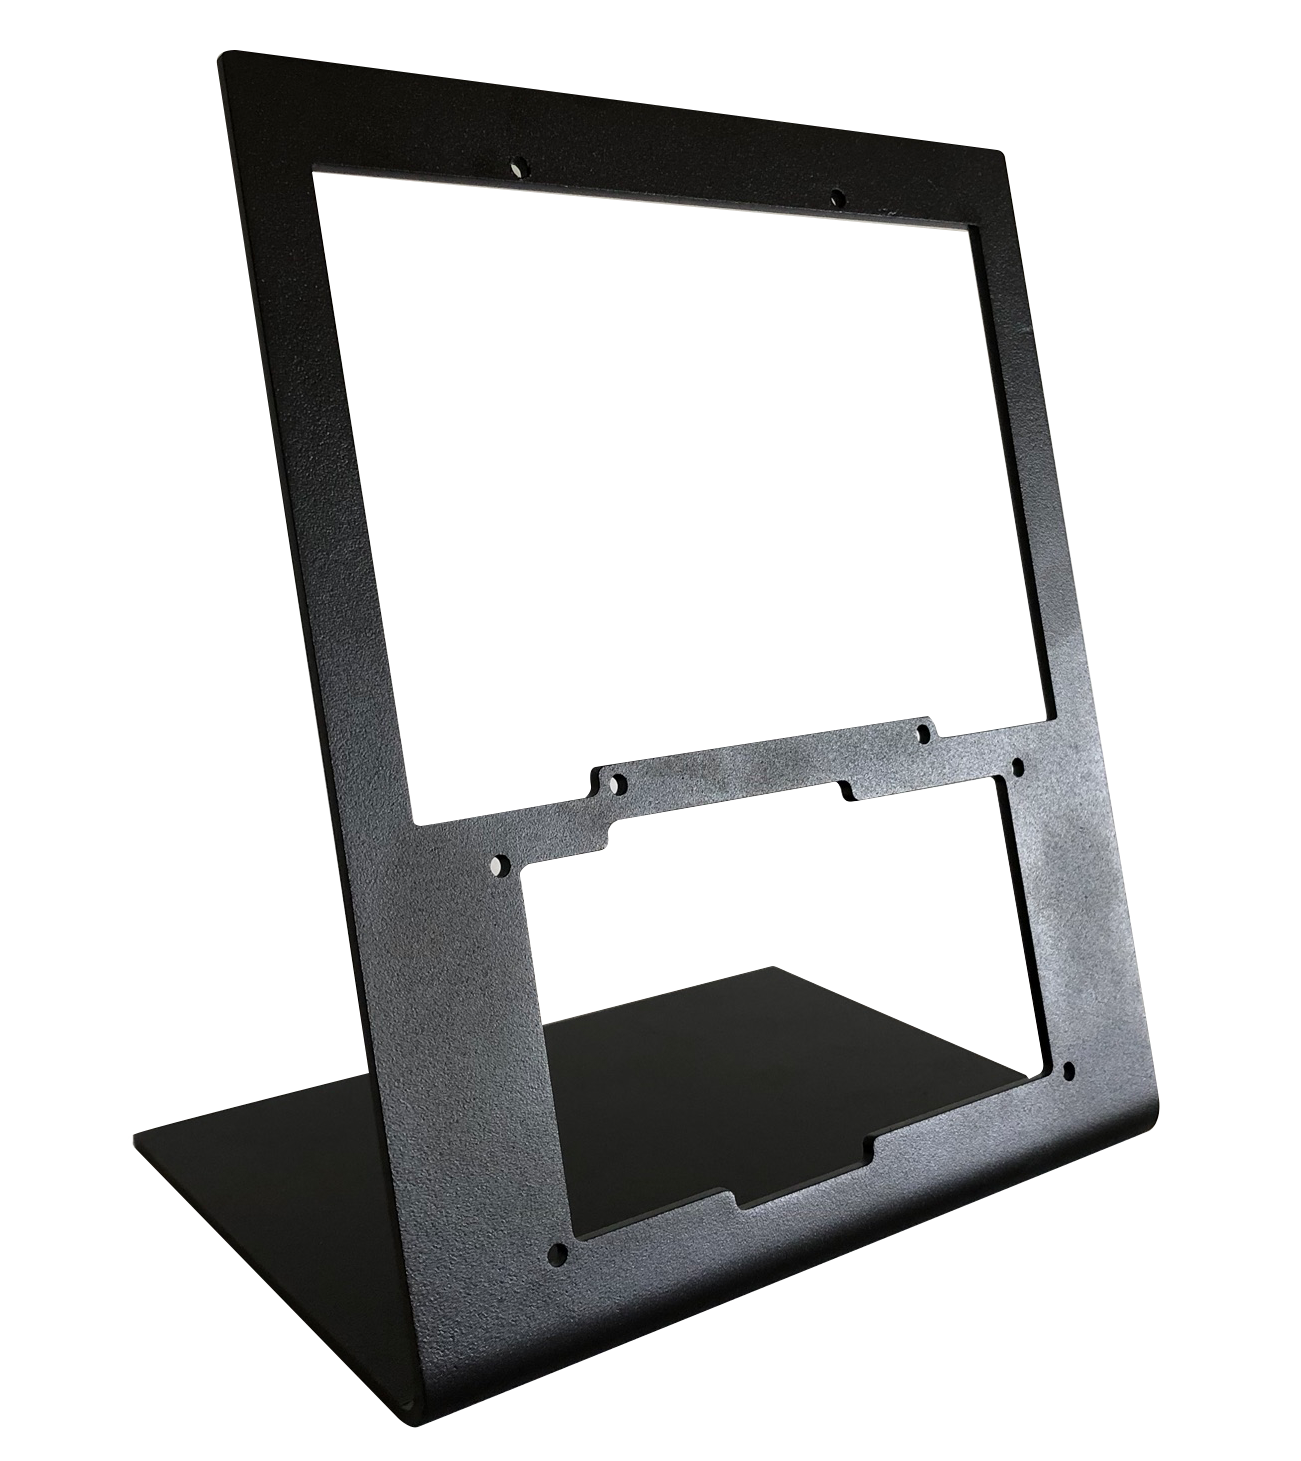 Dual Desktop stand for RealSimGear GNS530 & GNS430